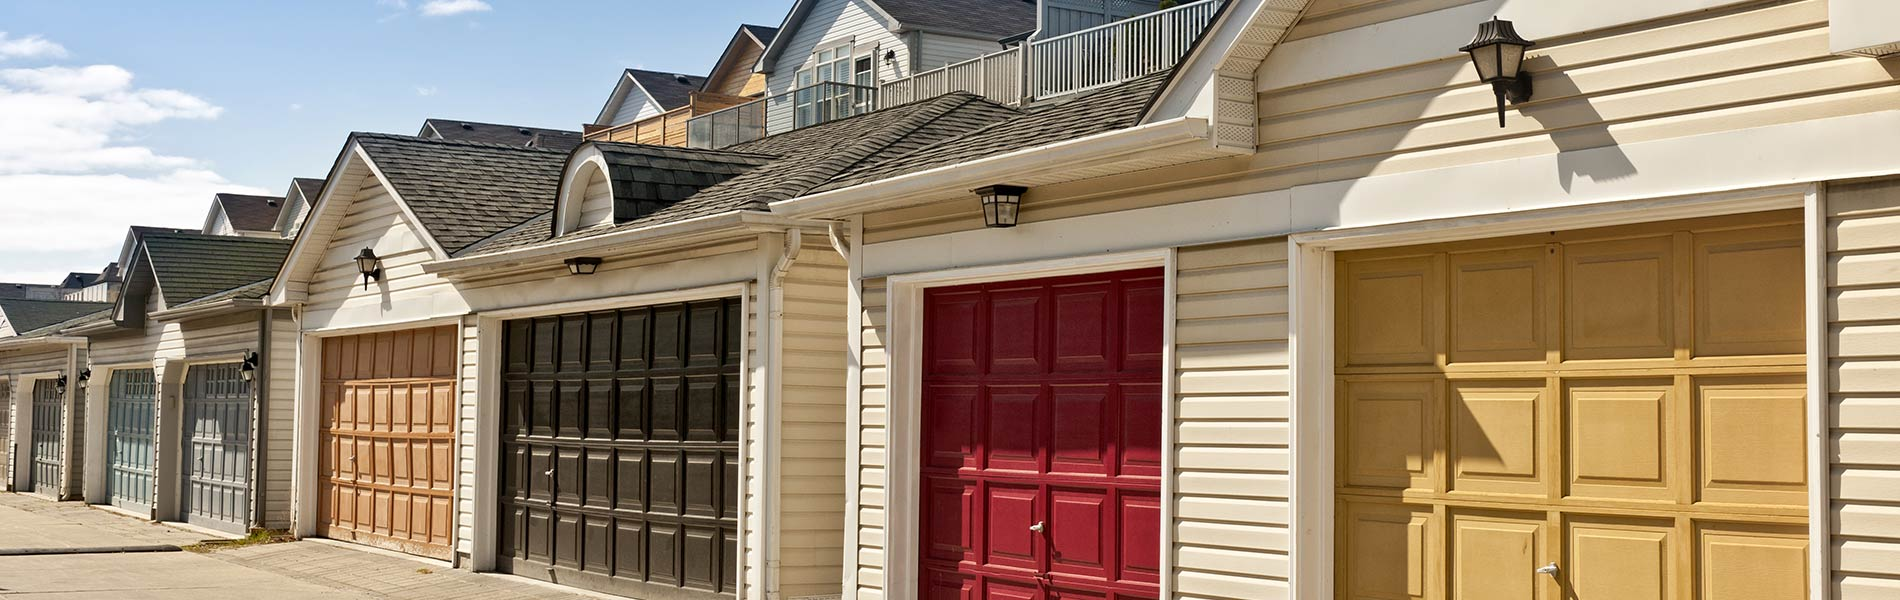 Interstate Garage Door Service, Walnut Creek, CA 925-435-1796